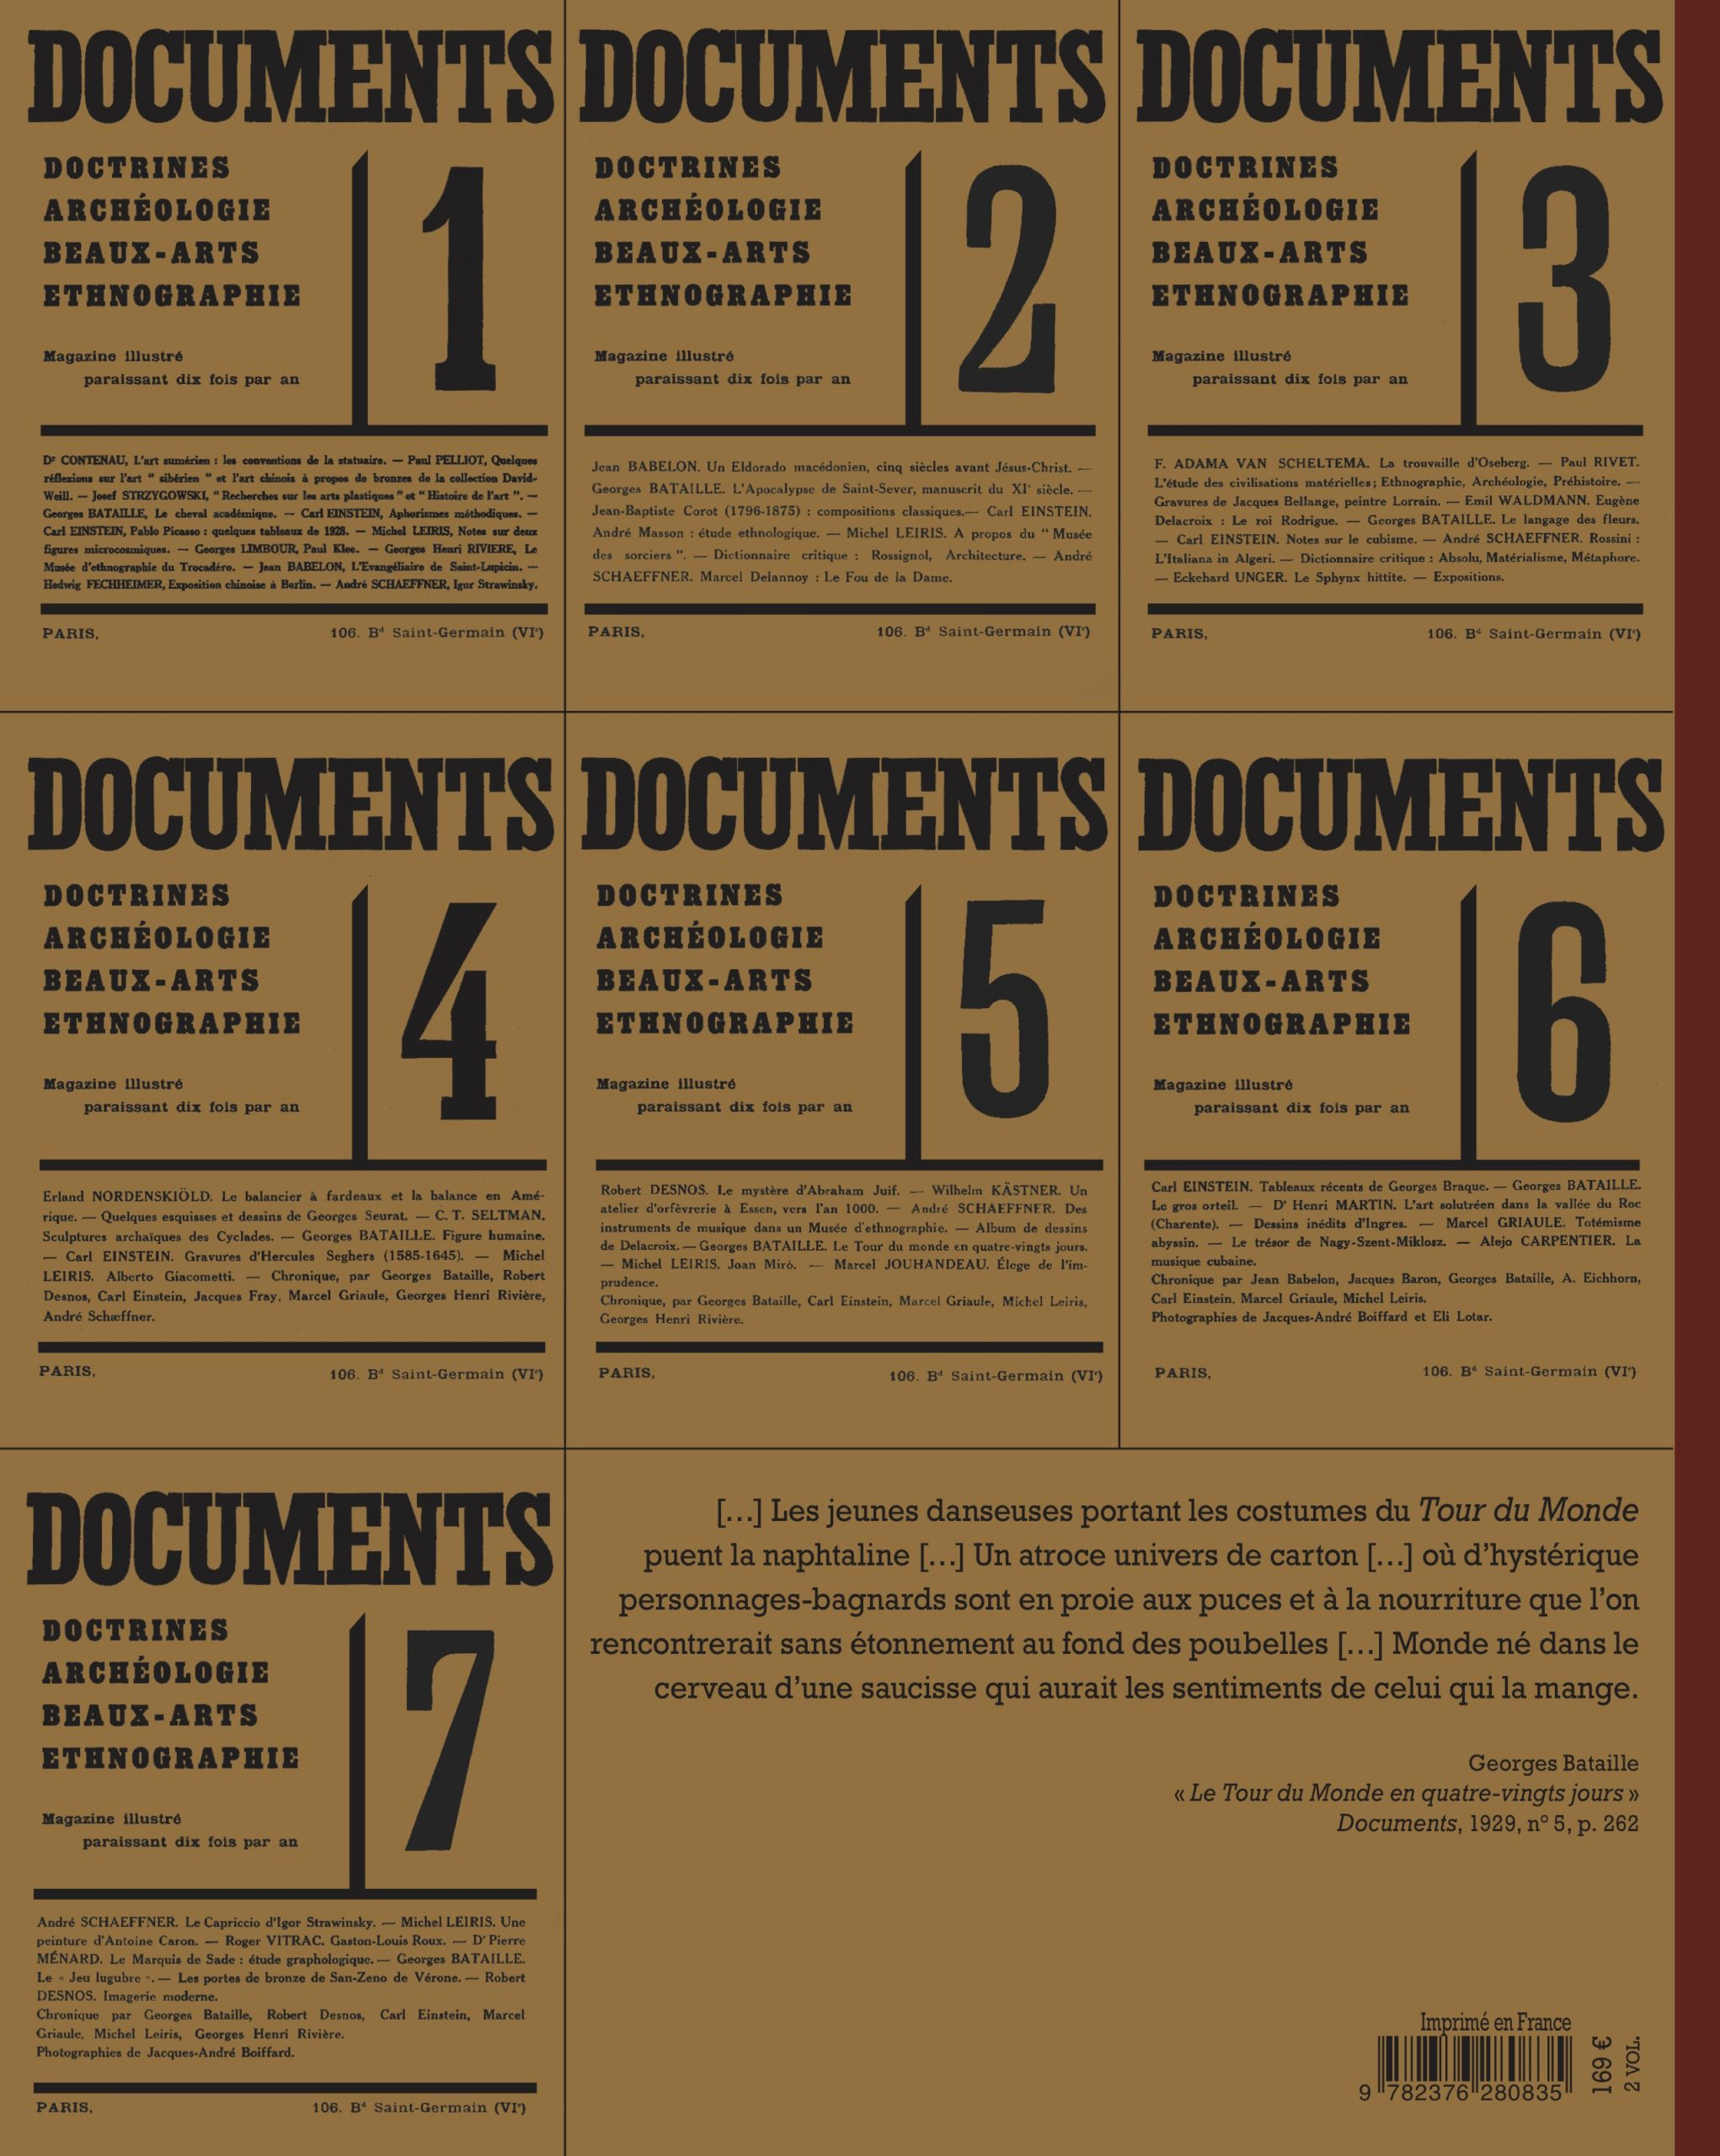 Documents (1929-1931), 2 vol. en fac-similé